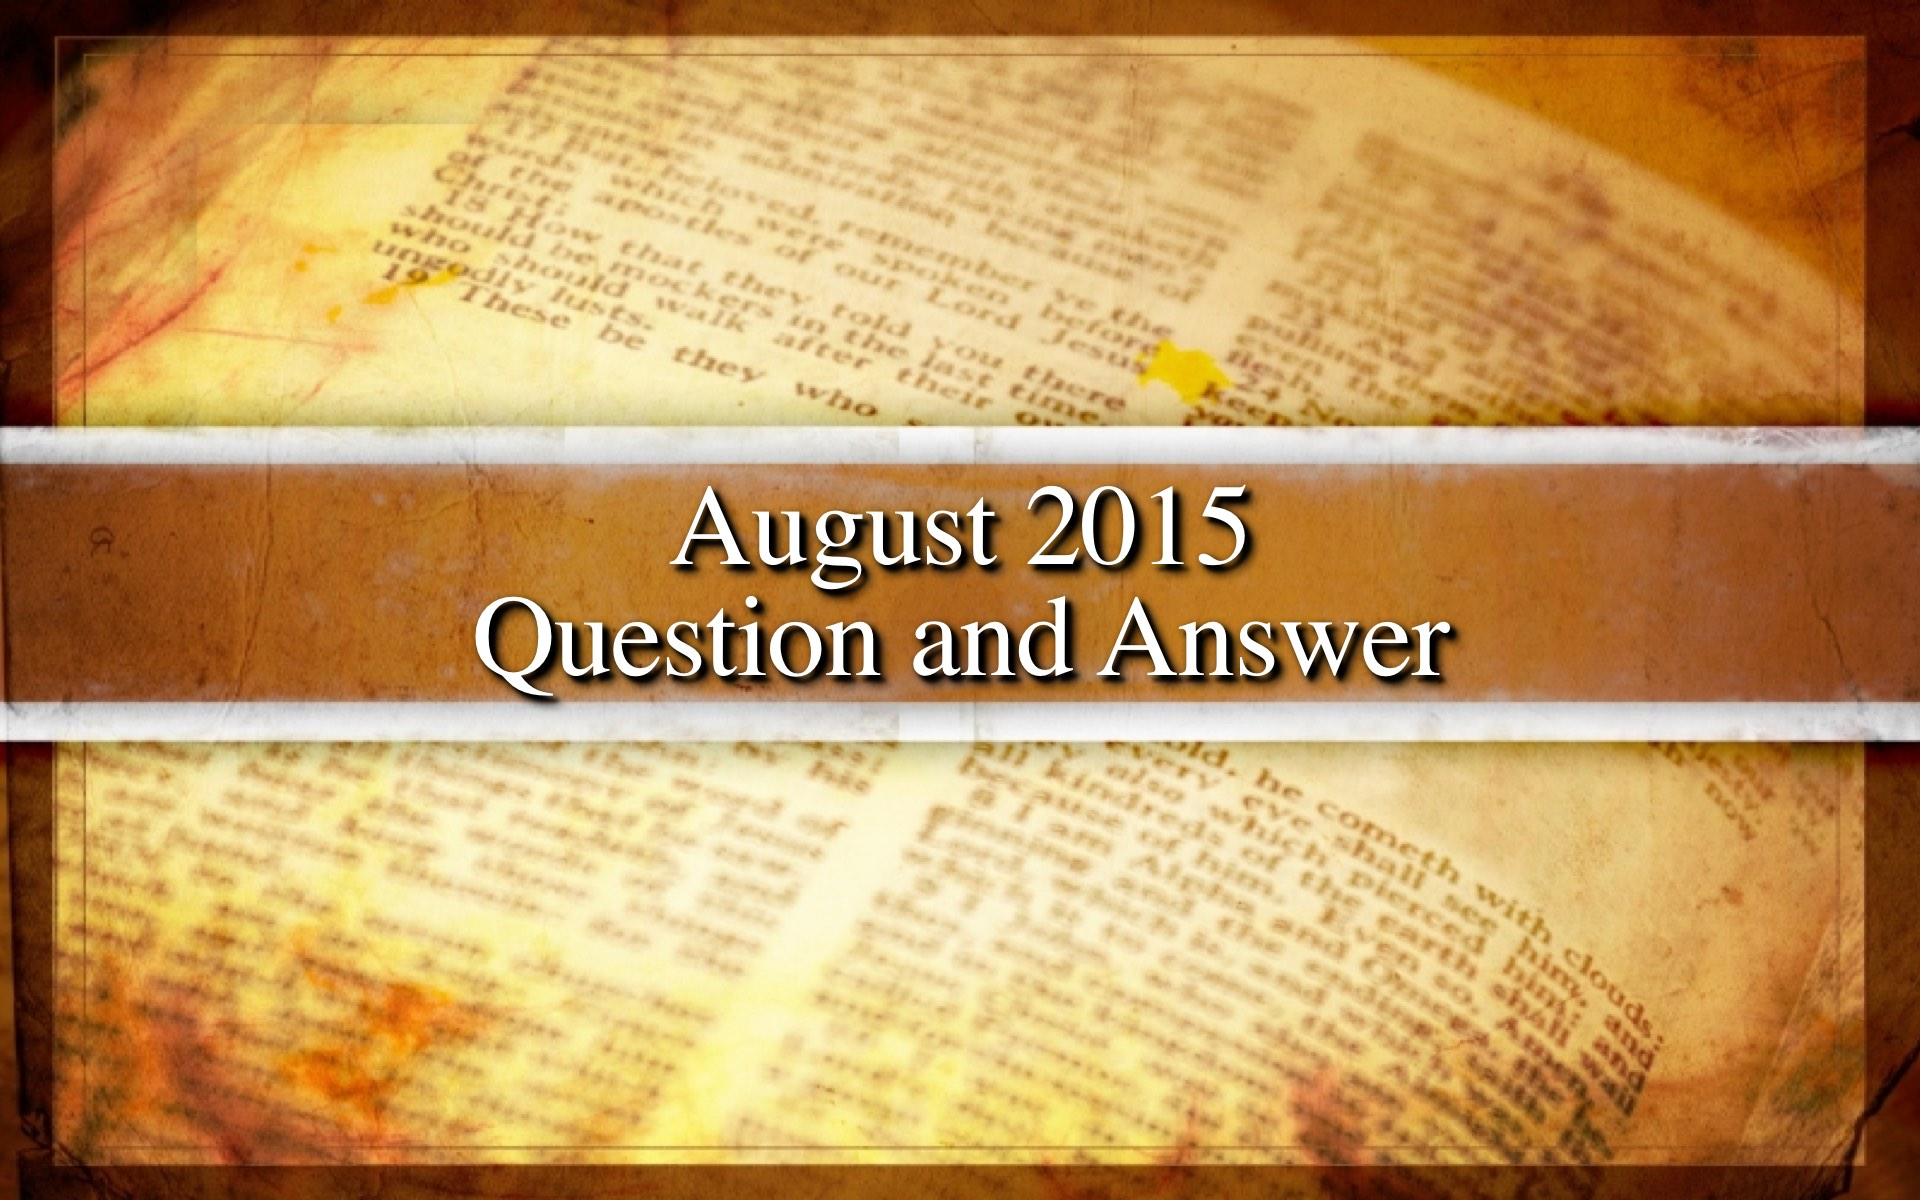 August 2015 Question and Answer